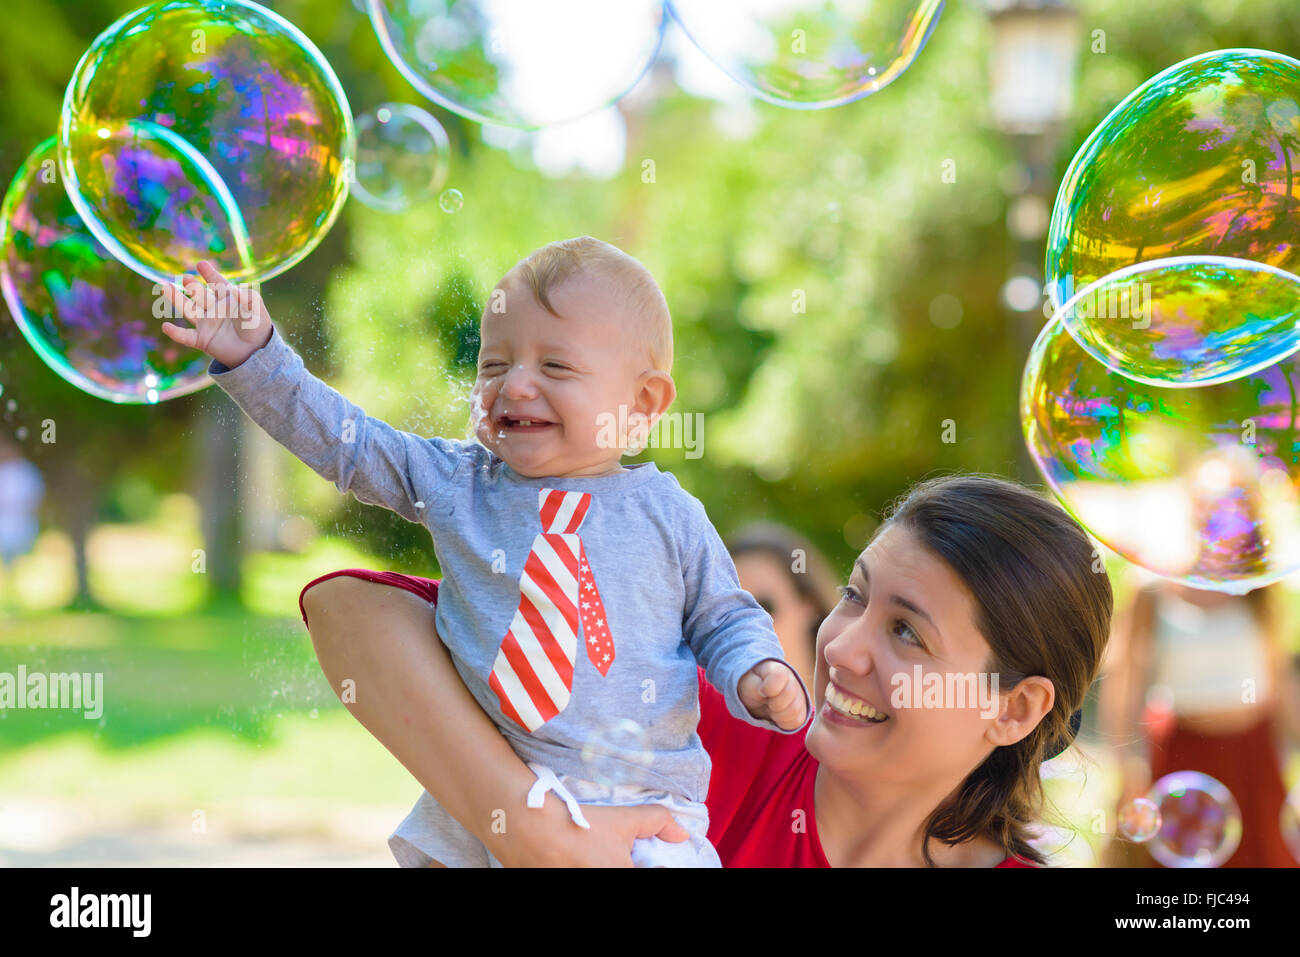 Cute baby and his mother catching soap bubbles in a summer day Stock Photo